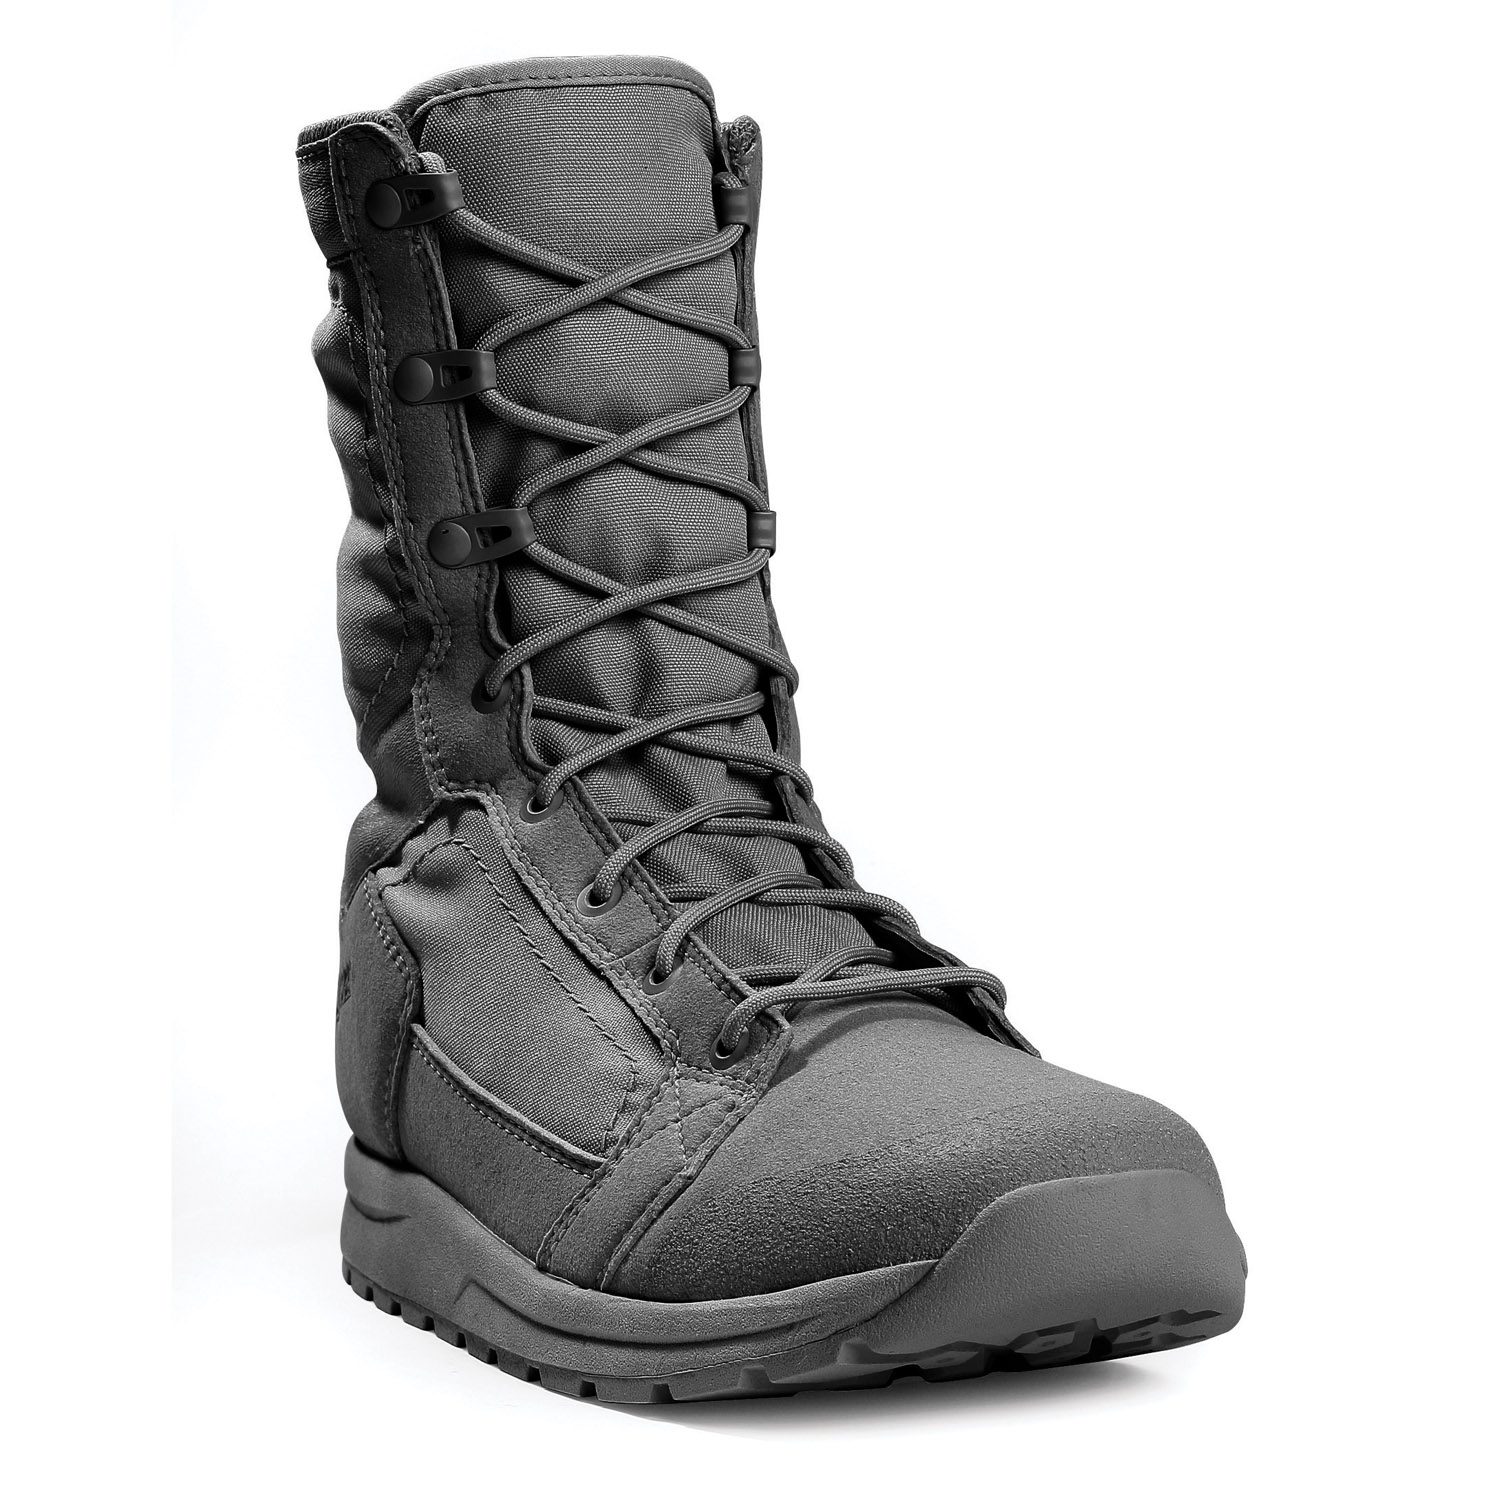 Danner Tactical Boots 3B6fTHie